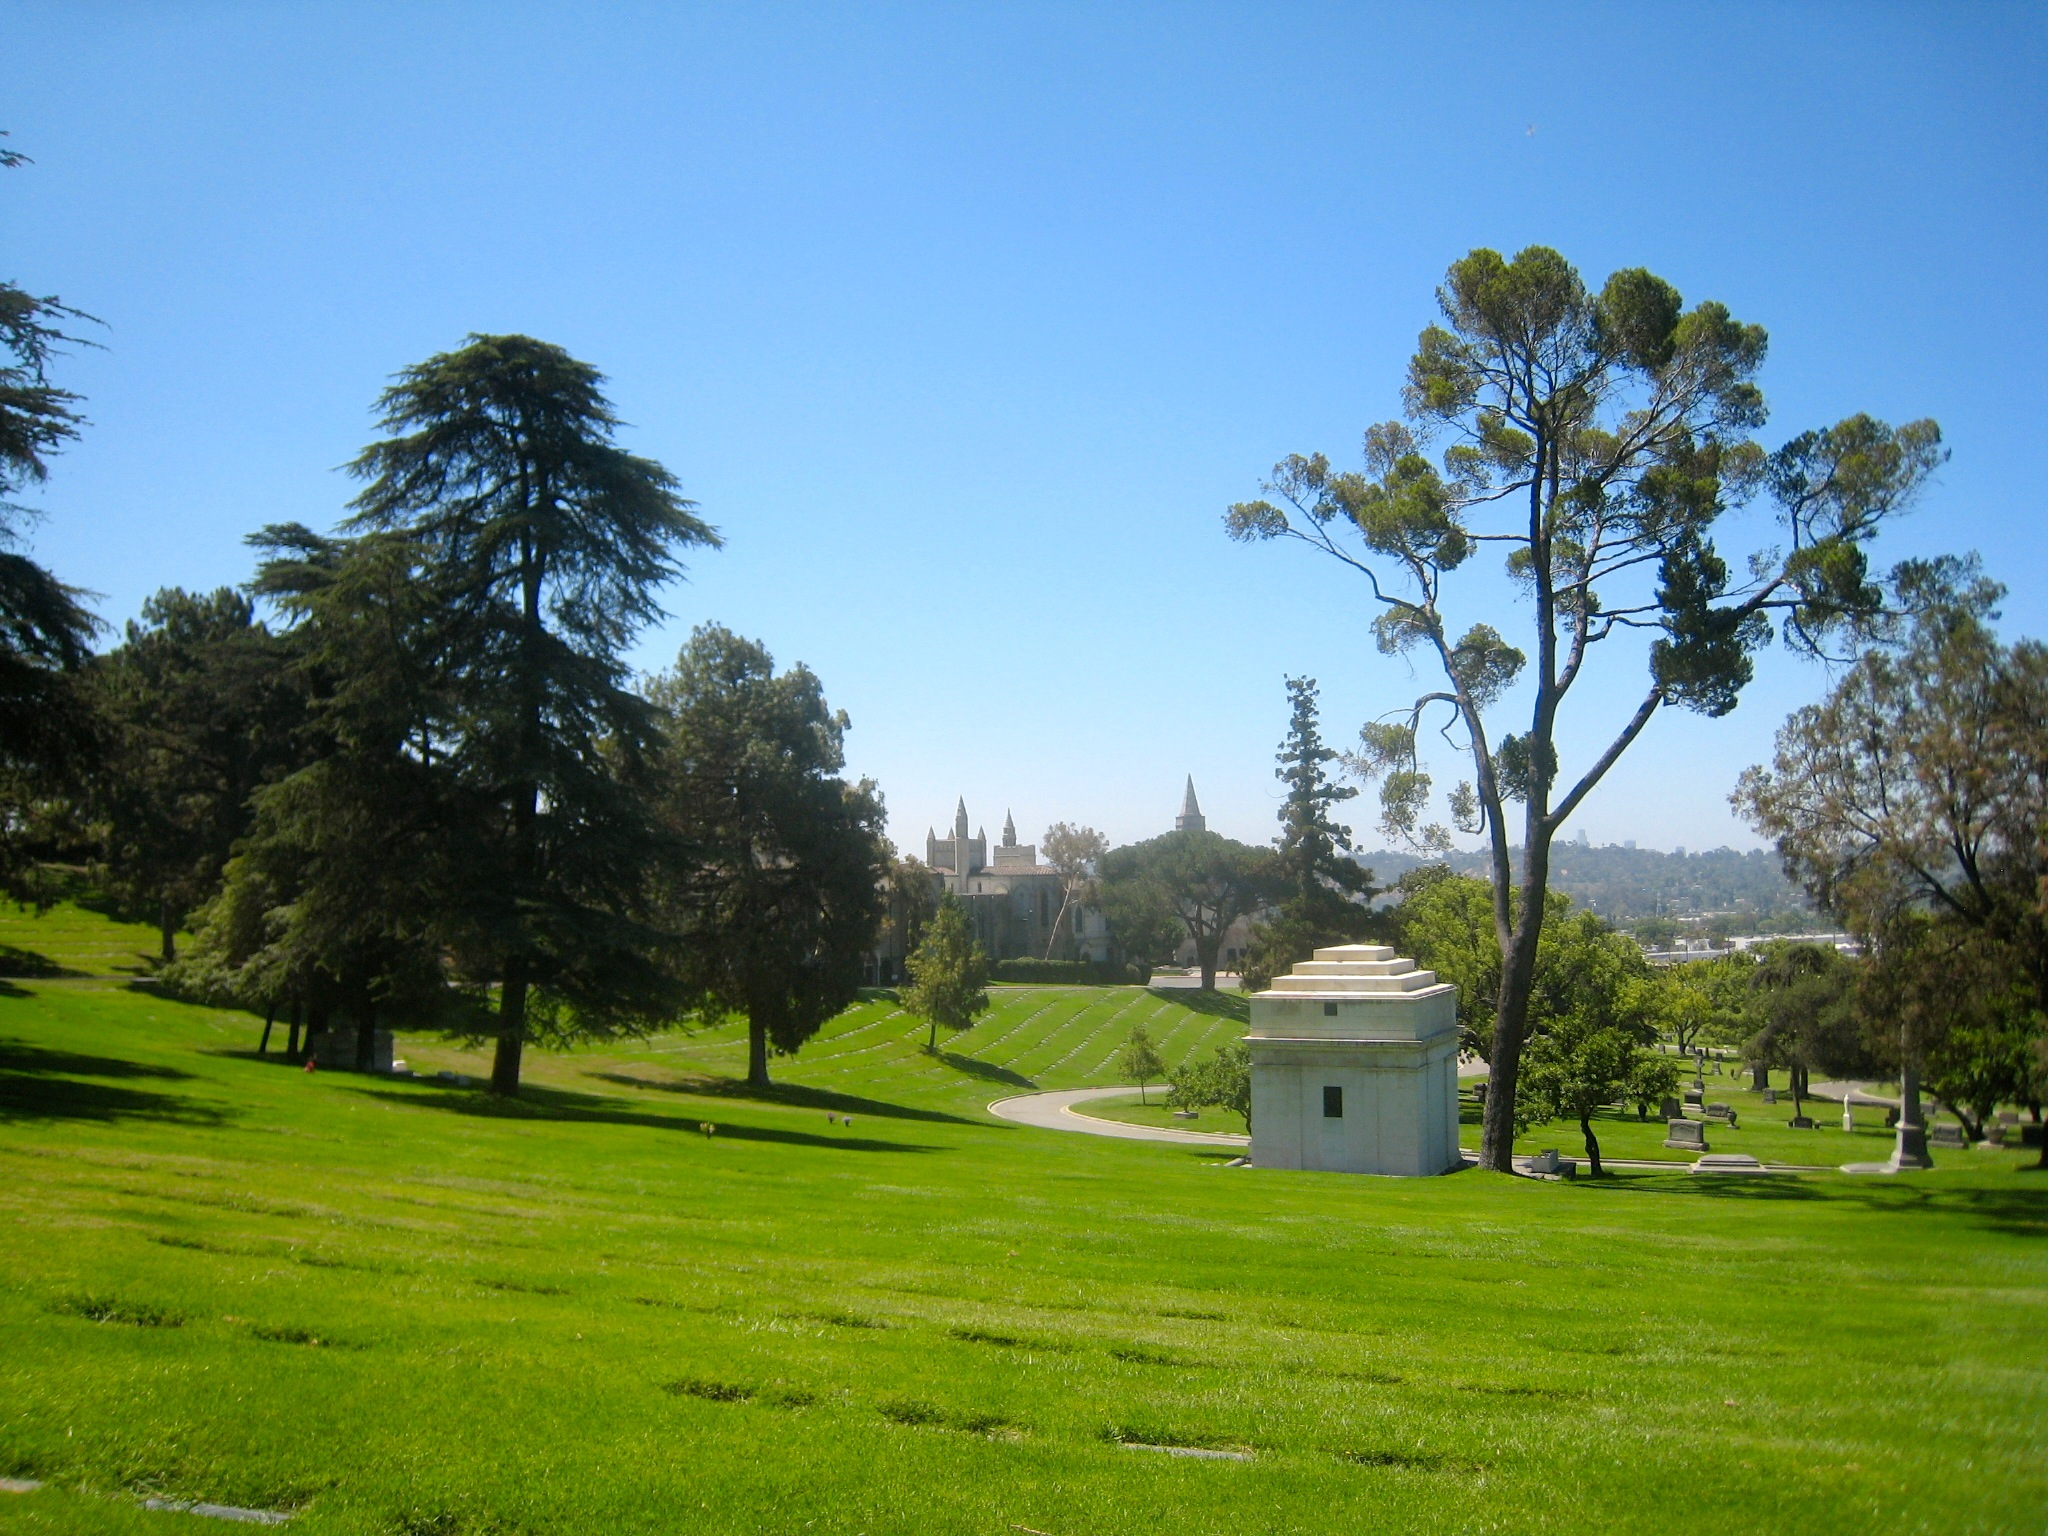 View from the hill where Alla Nazimova is buried